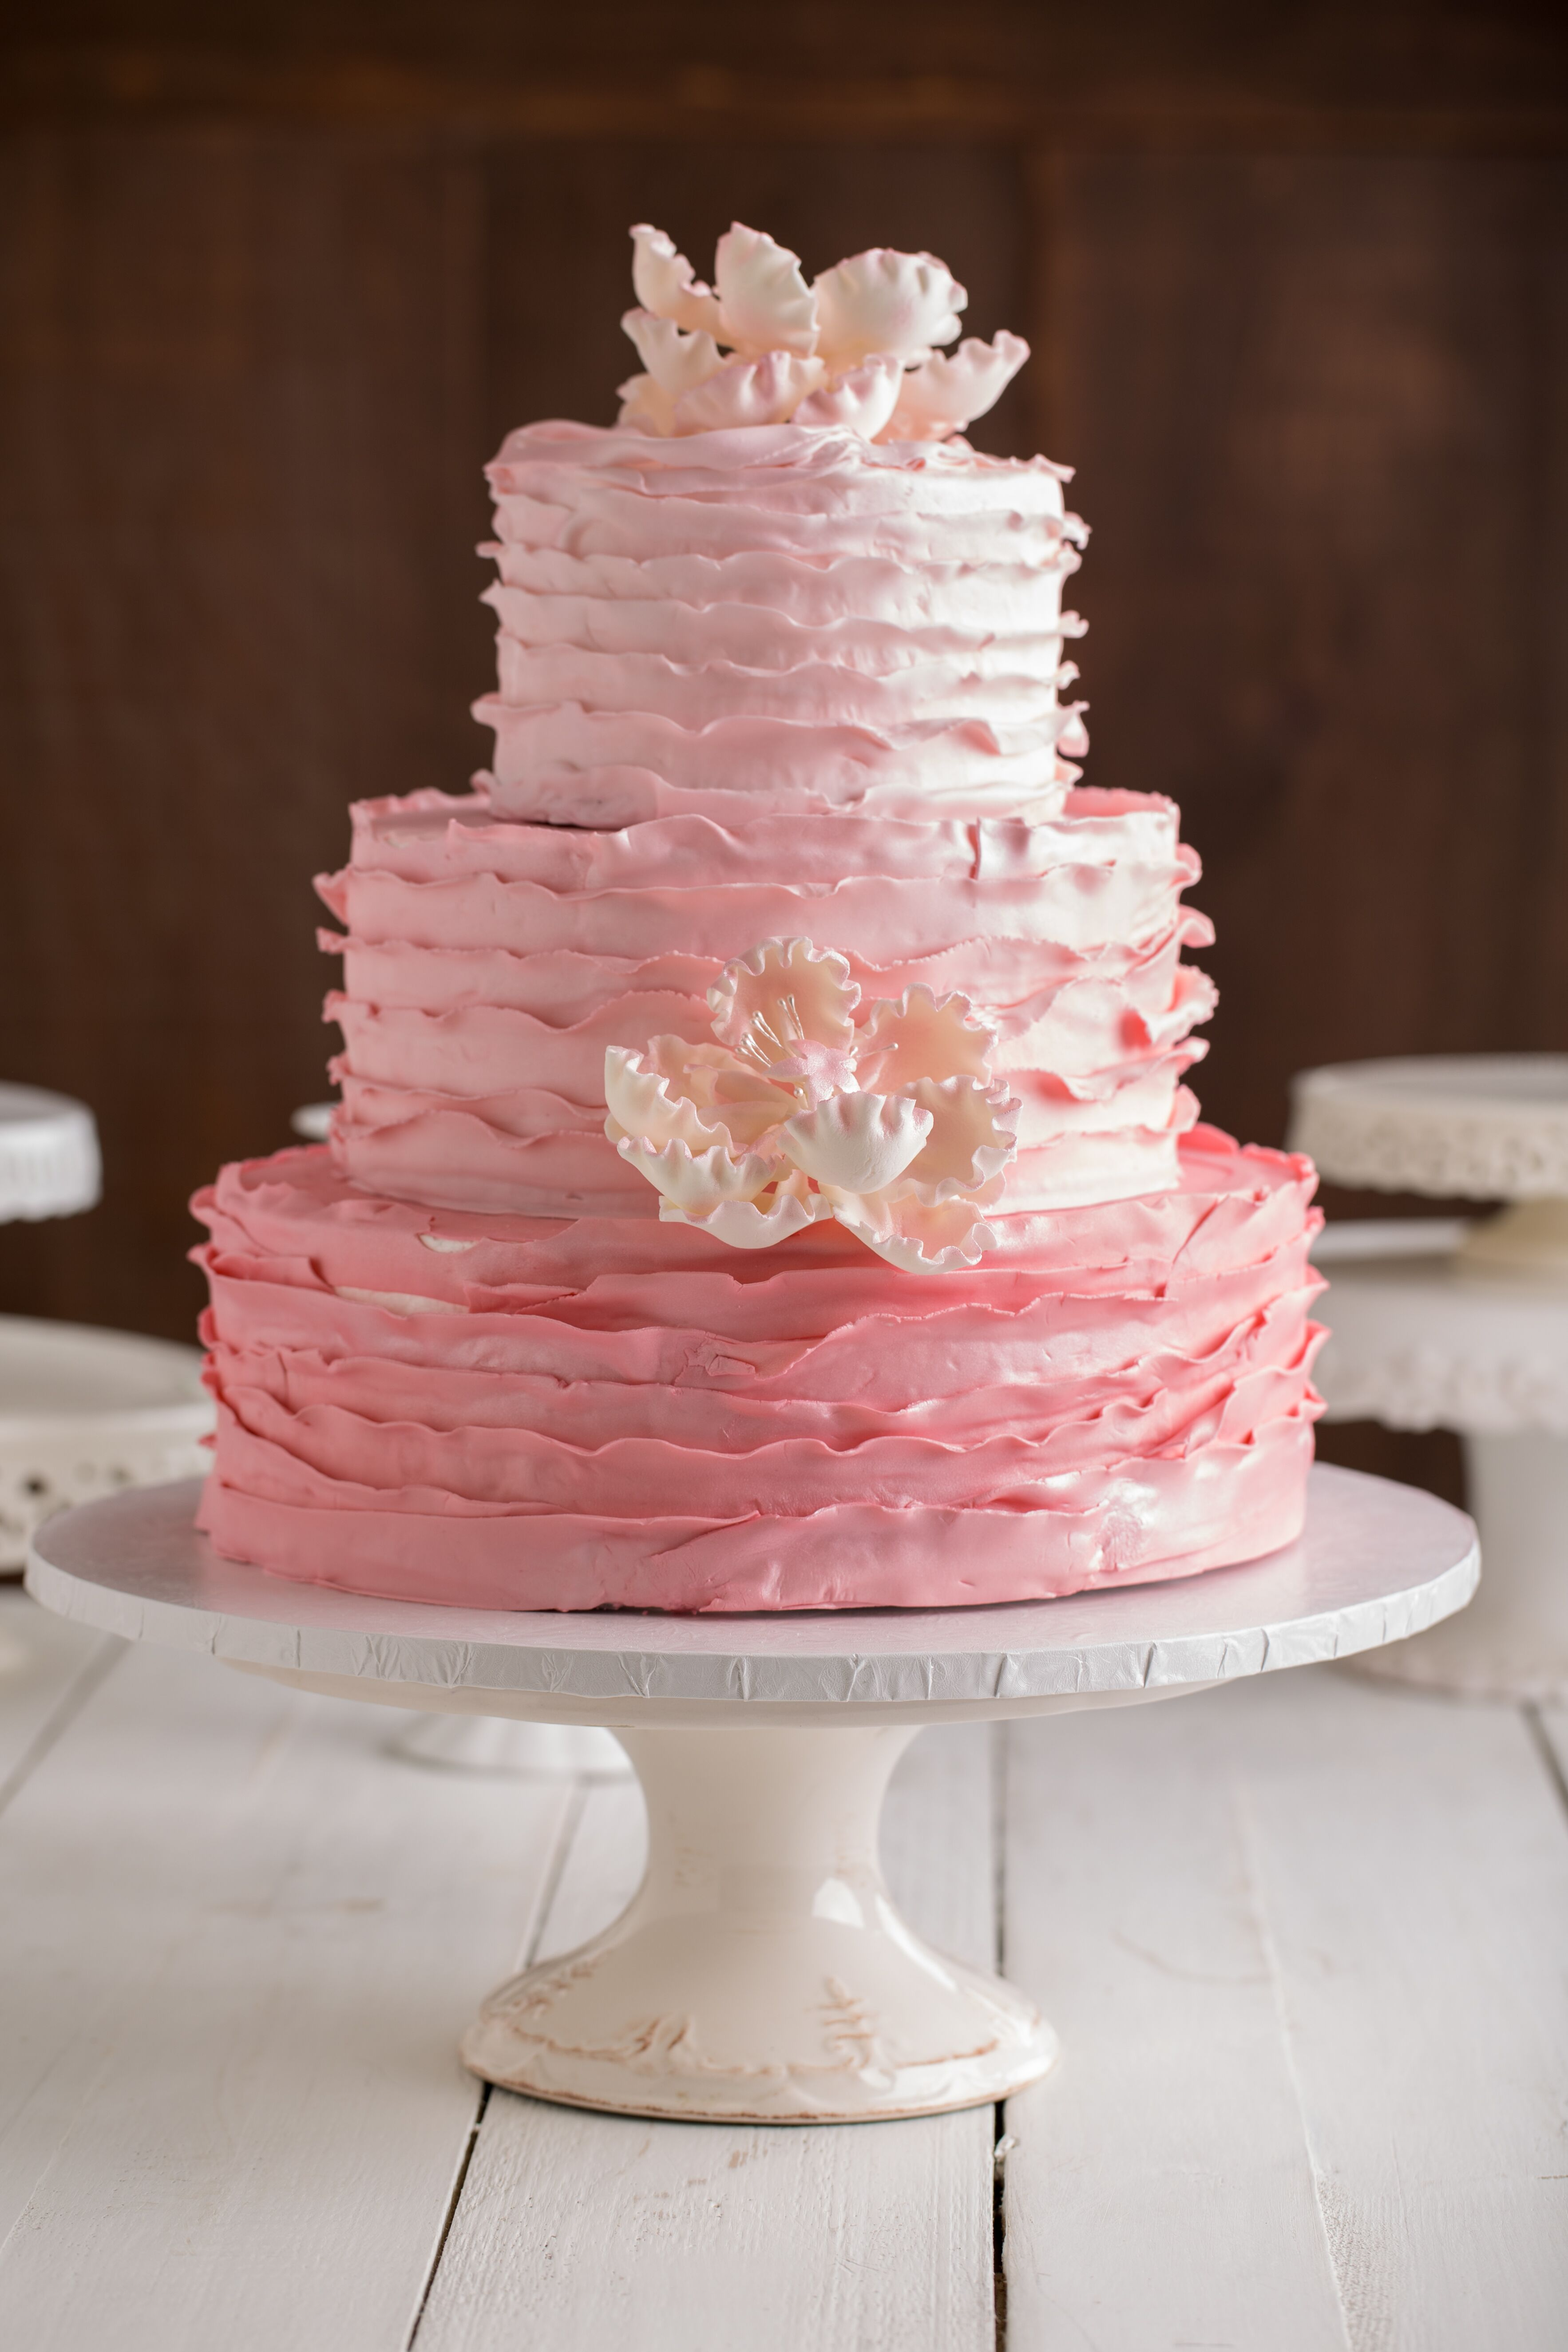 Wedding Cake Bakeries in Manchester, NH - The Knot